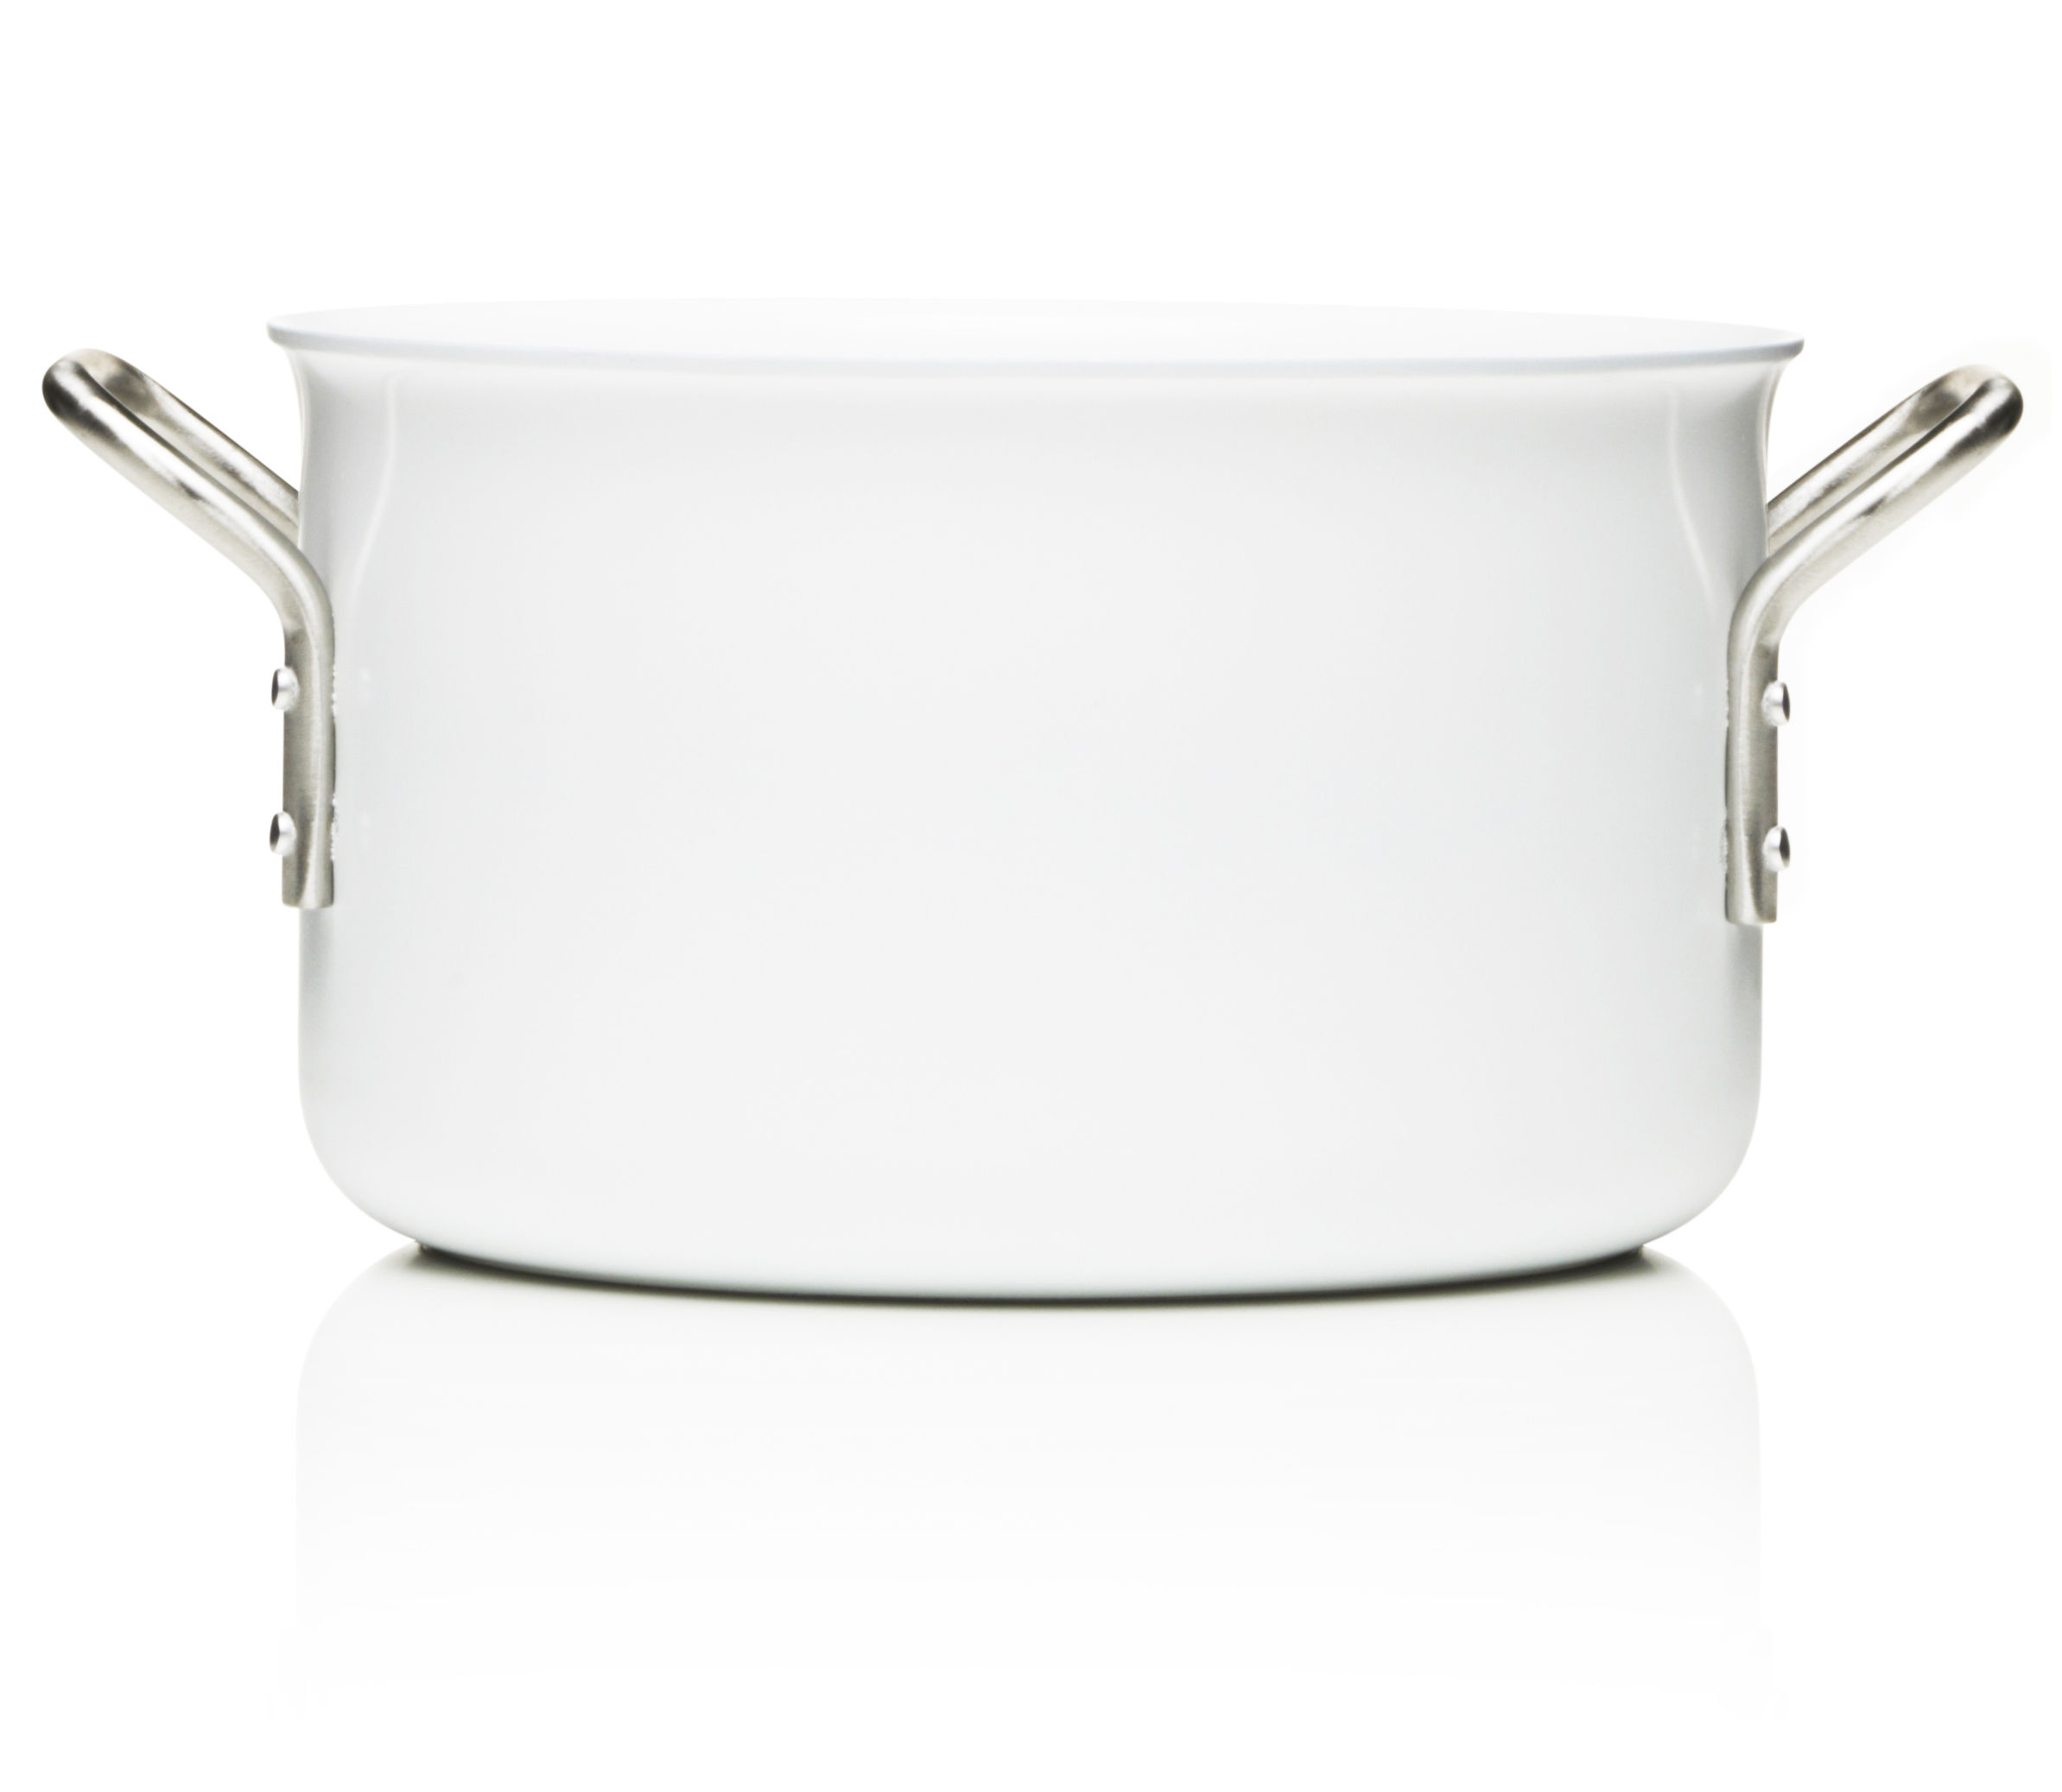 Kitchenware - Pots & Pans - White Line Stew pot - 3,8L - Web exclusivity by Eva Trio - White - Aluminium, Ceramic, Stainless steel